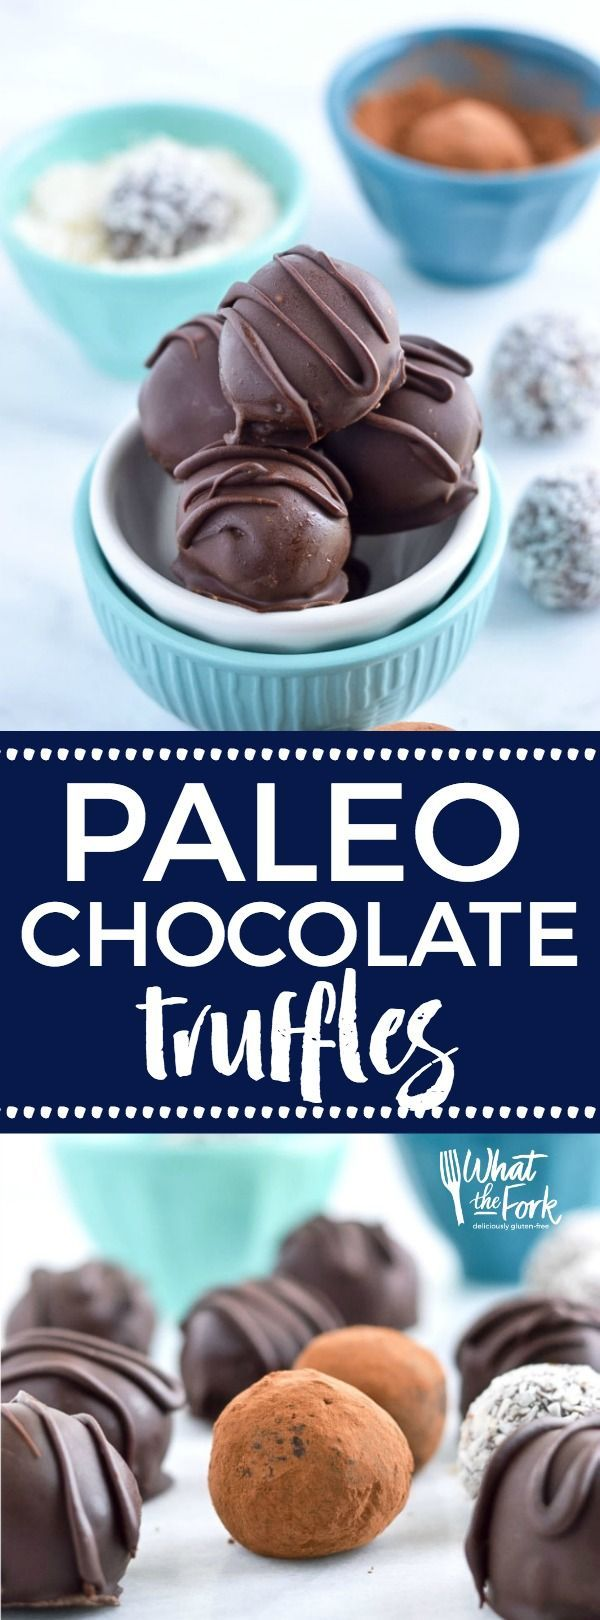 Easy Paleo Chocolate Truffles are so rich and creamy! Plus recipe included 3 ways to top them. Recipe from @whattheforkblog | healthy recipes | healthy desserts | easy desserts | how to make truffles | dairy free truffles | naturally sweetened: